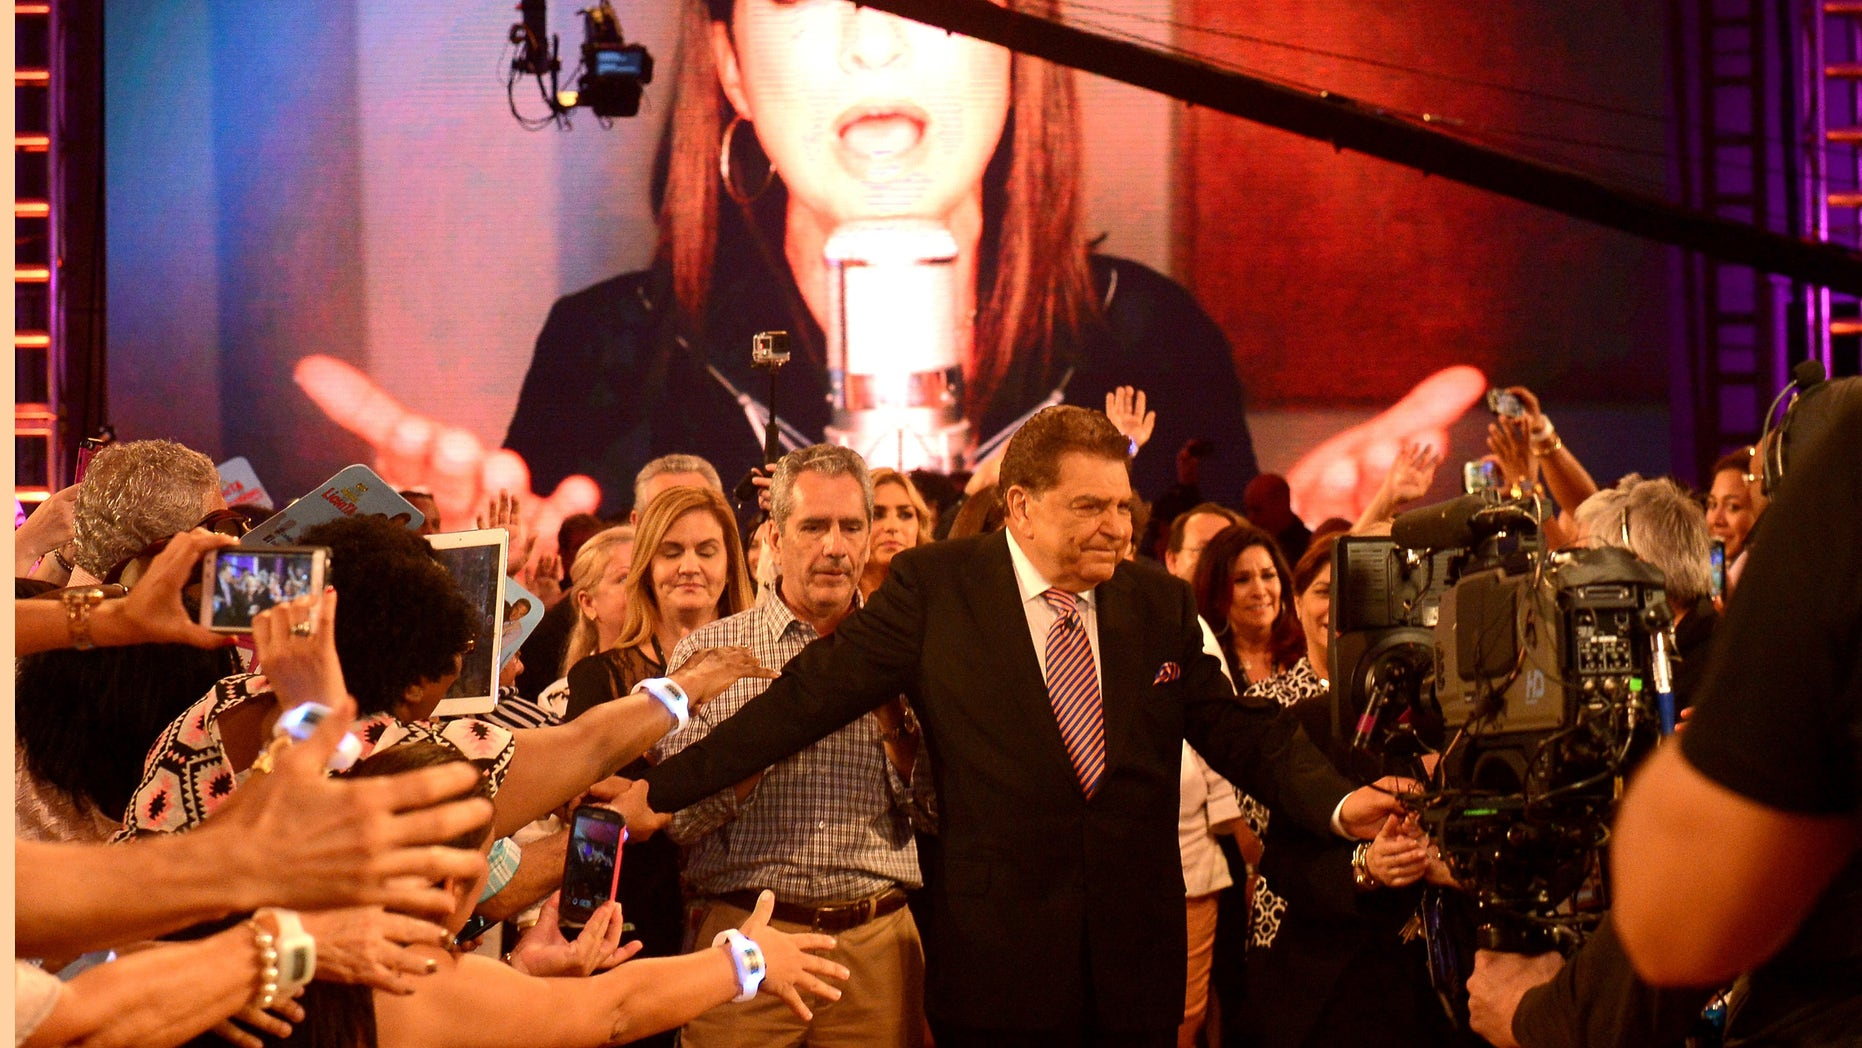 Don Francisco bids farewell to fans at Univision's Sabado Gigante on September 19, 2015 in Miami, Florida.